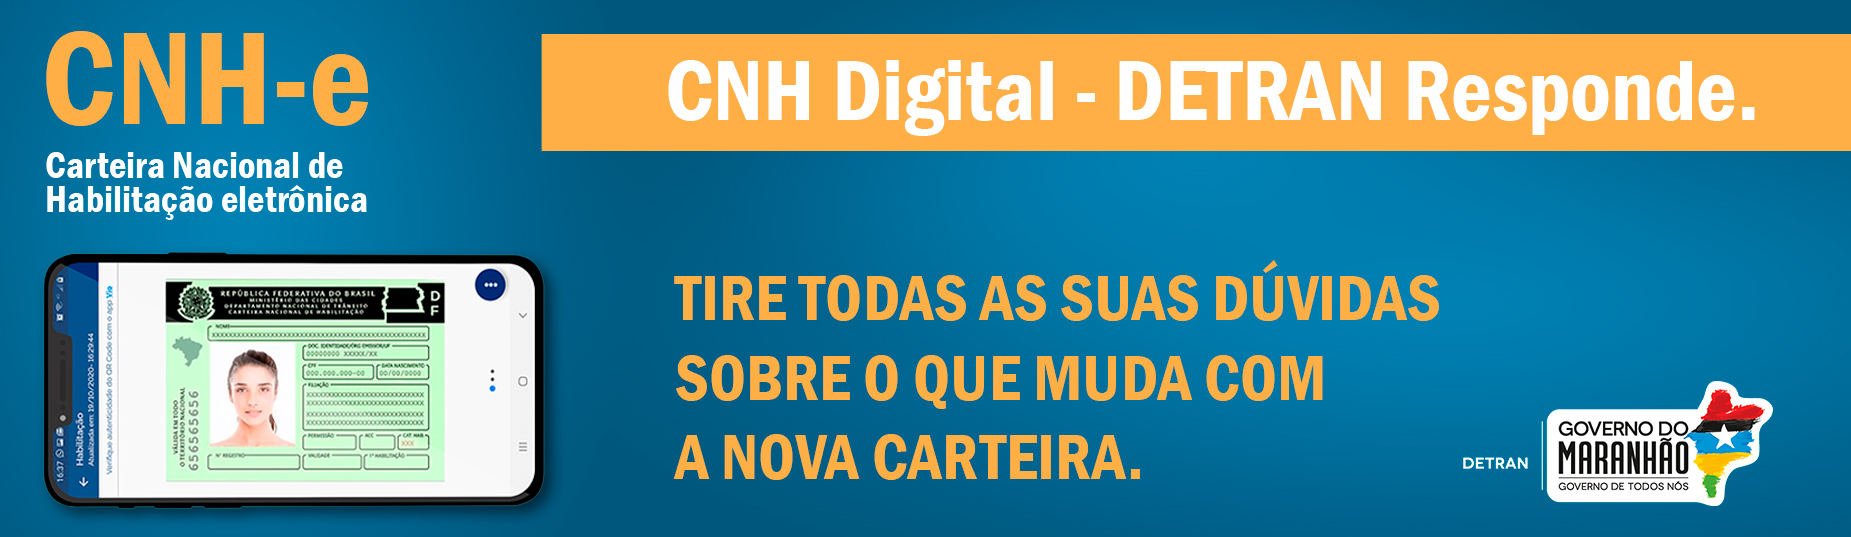 CNHe - CNH Digital